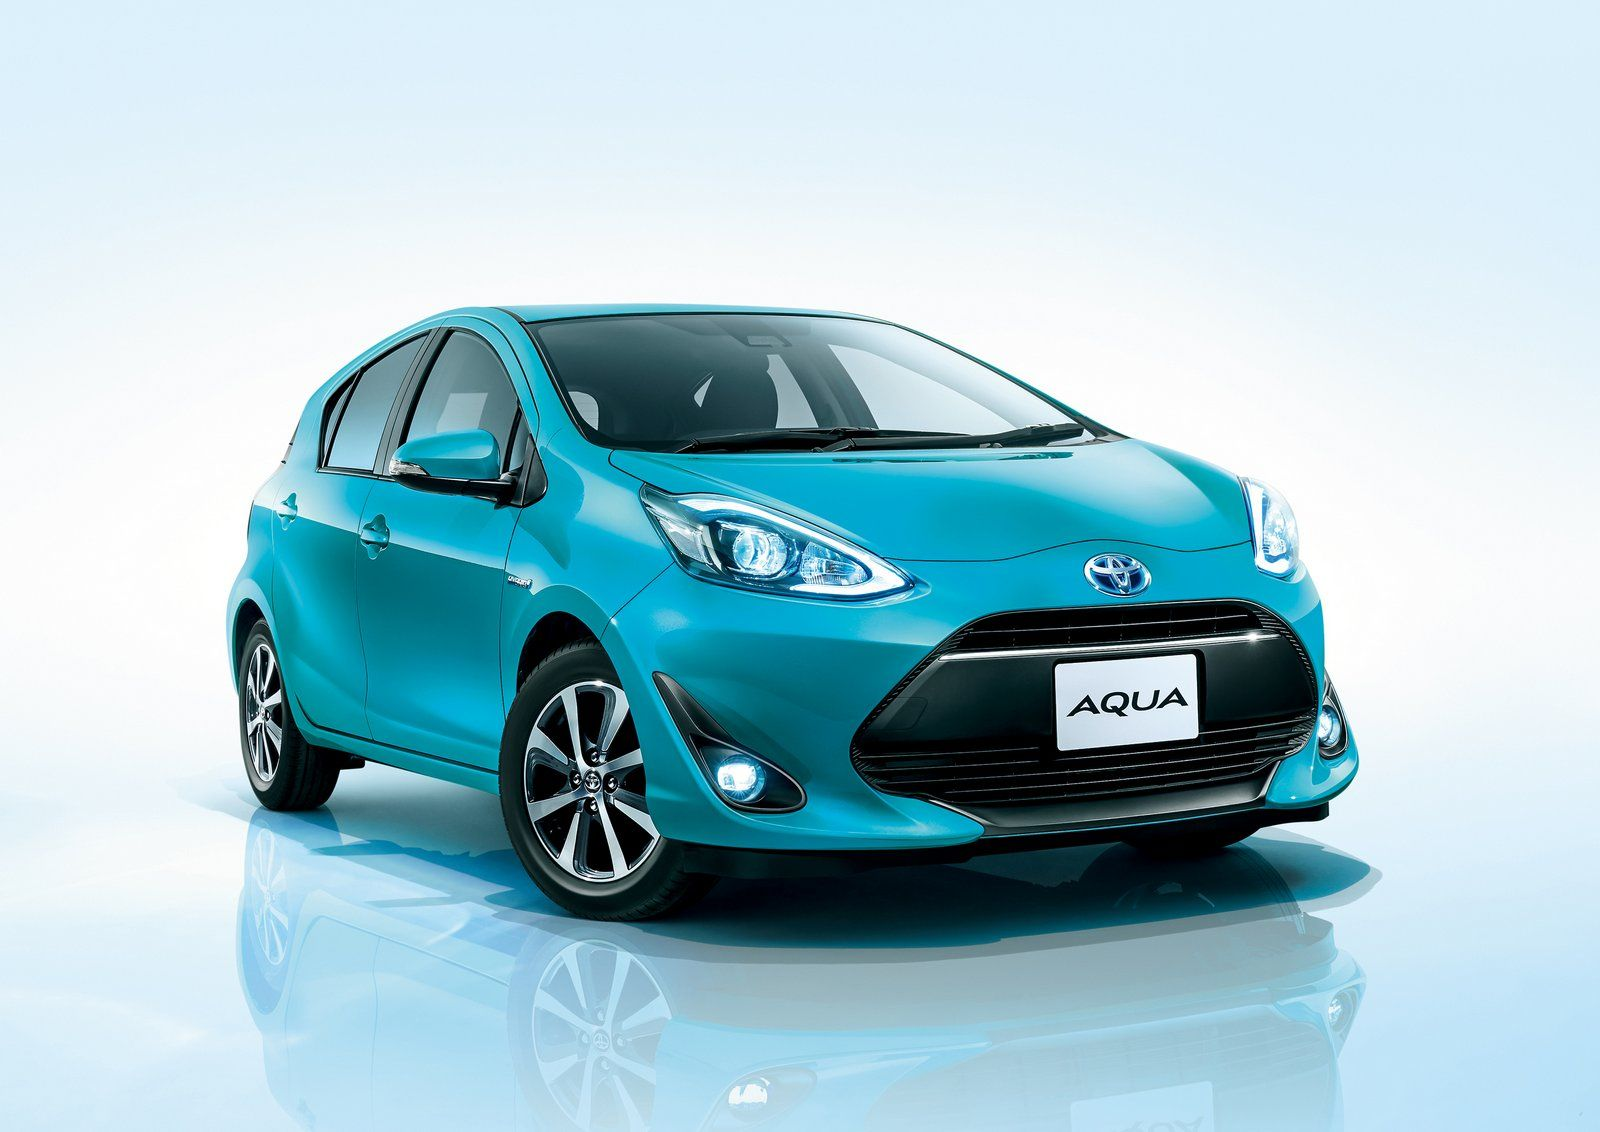 Toyota Aqua Is Now Remodeled And Comes In A Crossover Version In Order To Keep Customers Interested In Sedans And Hatchbacks Some Compan トヨタ アクア ハイブリッドカー トヨタ